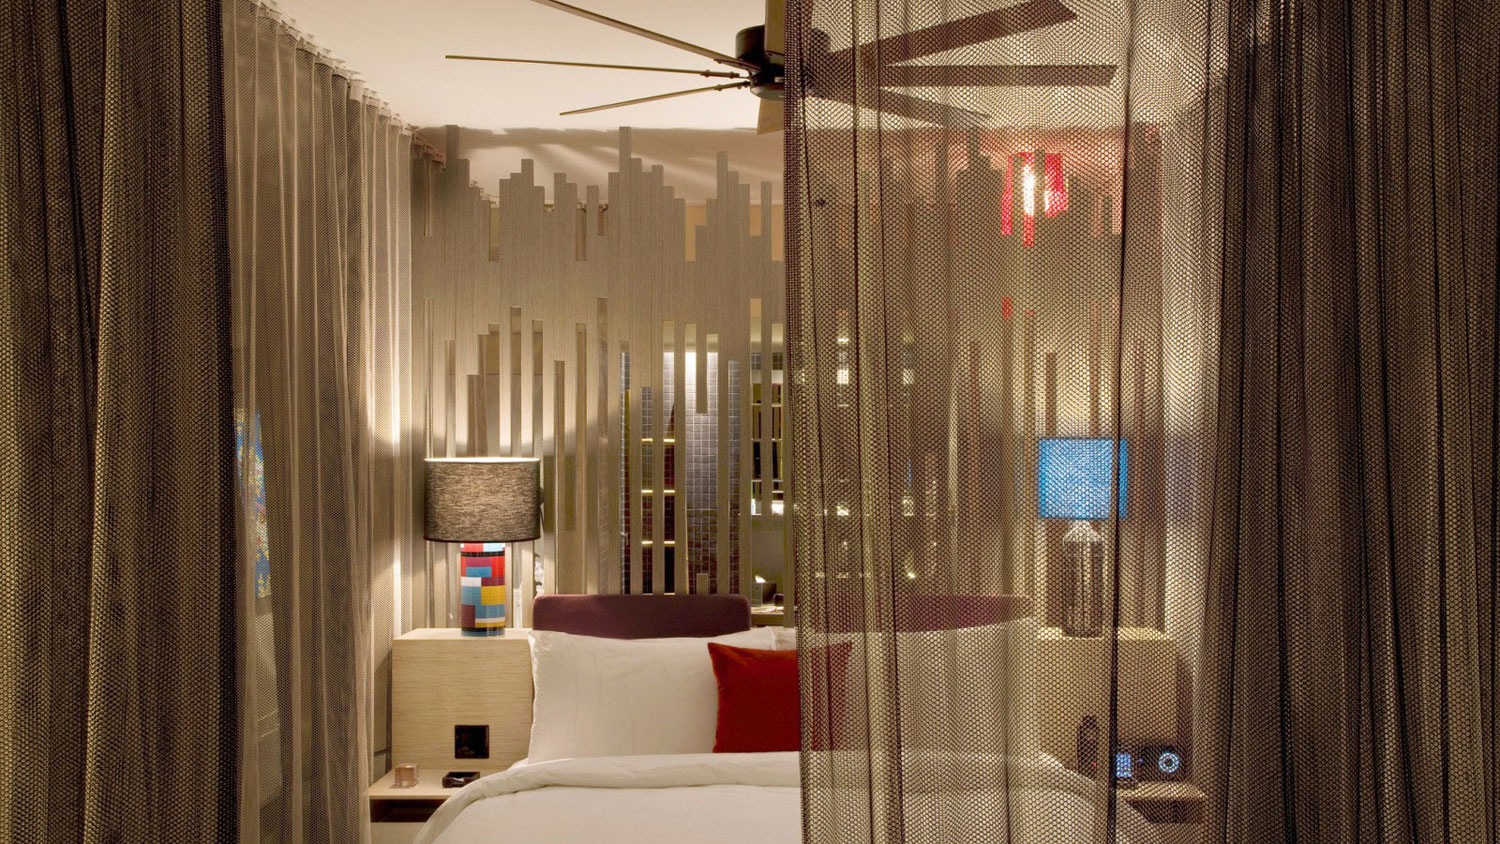 astounding-bedroom-design-with-brown-curtains-at-w-hotel-spa